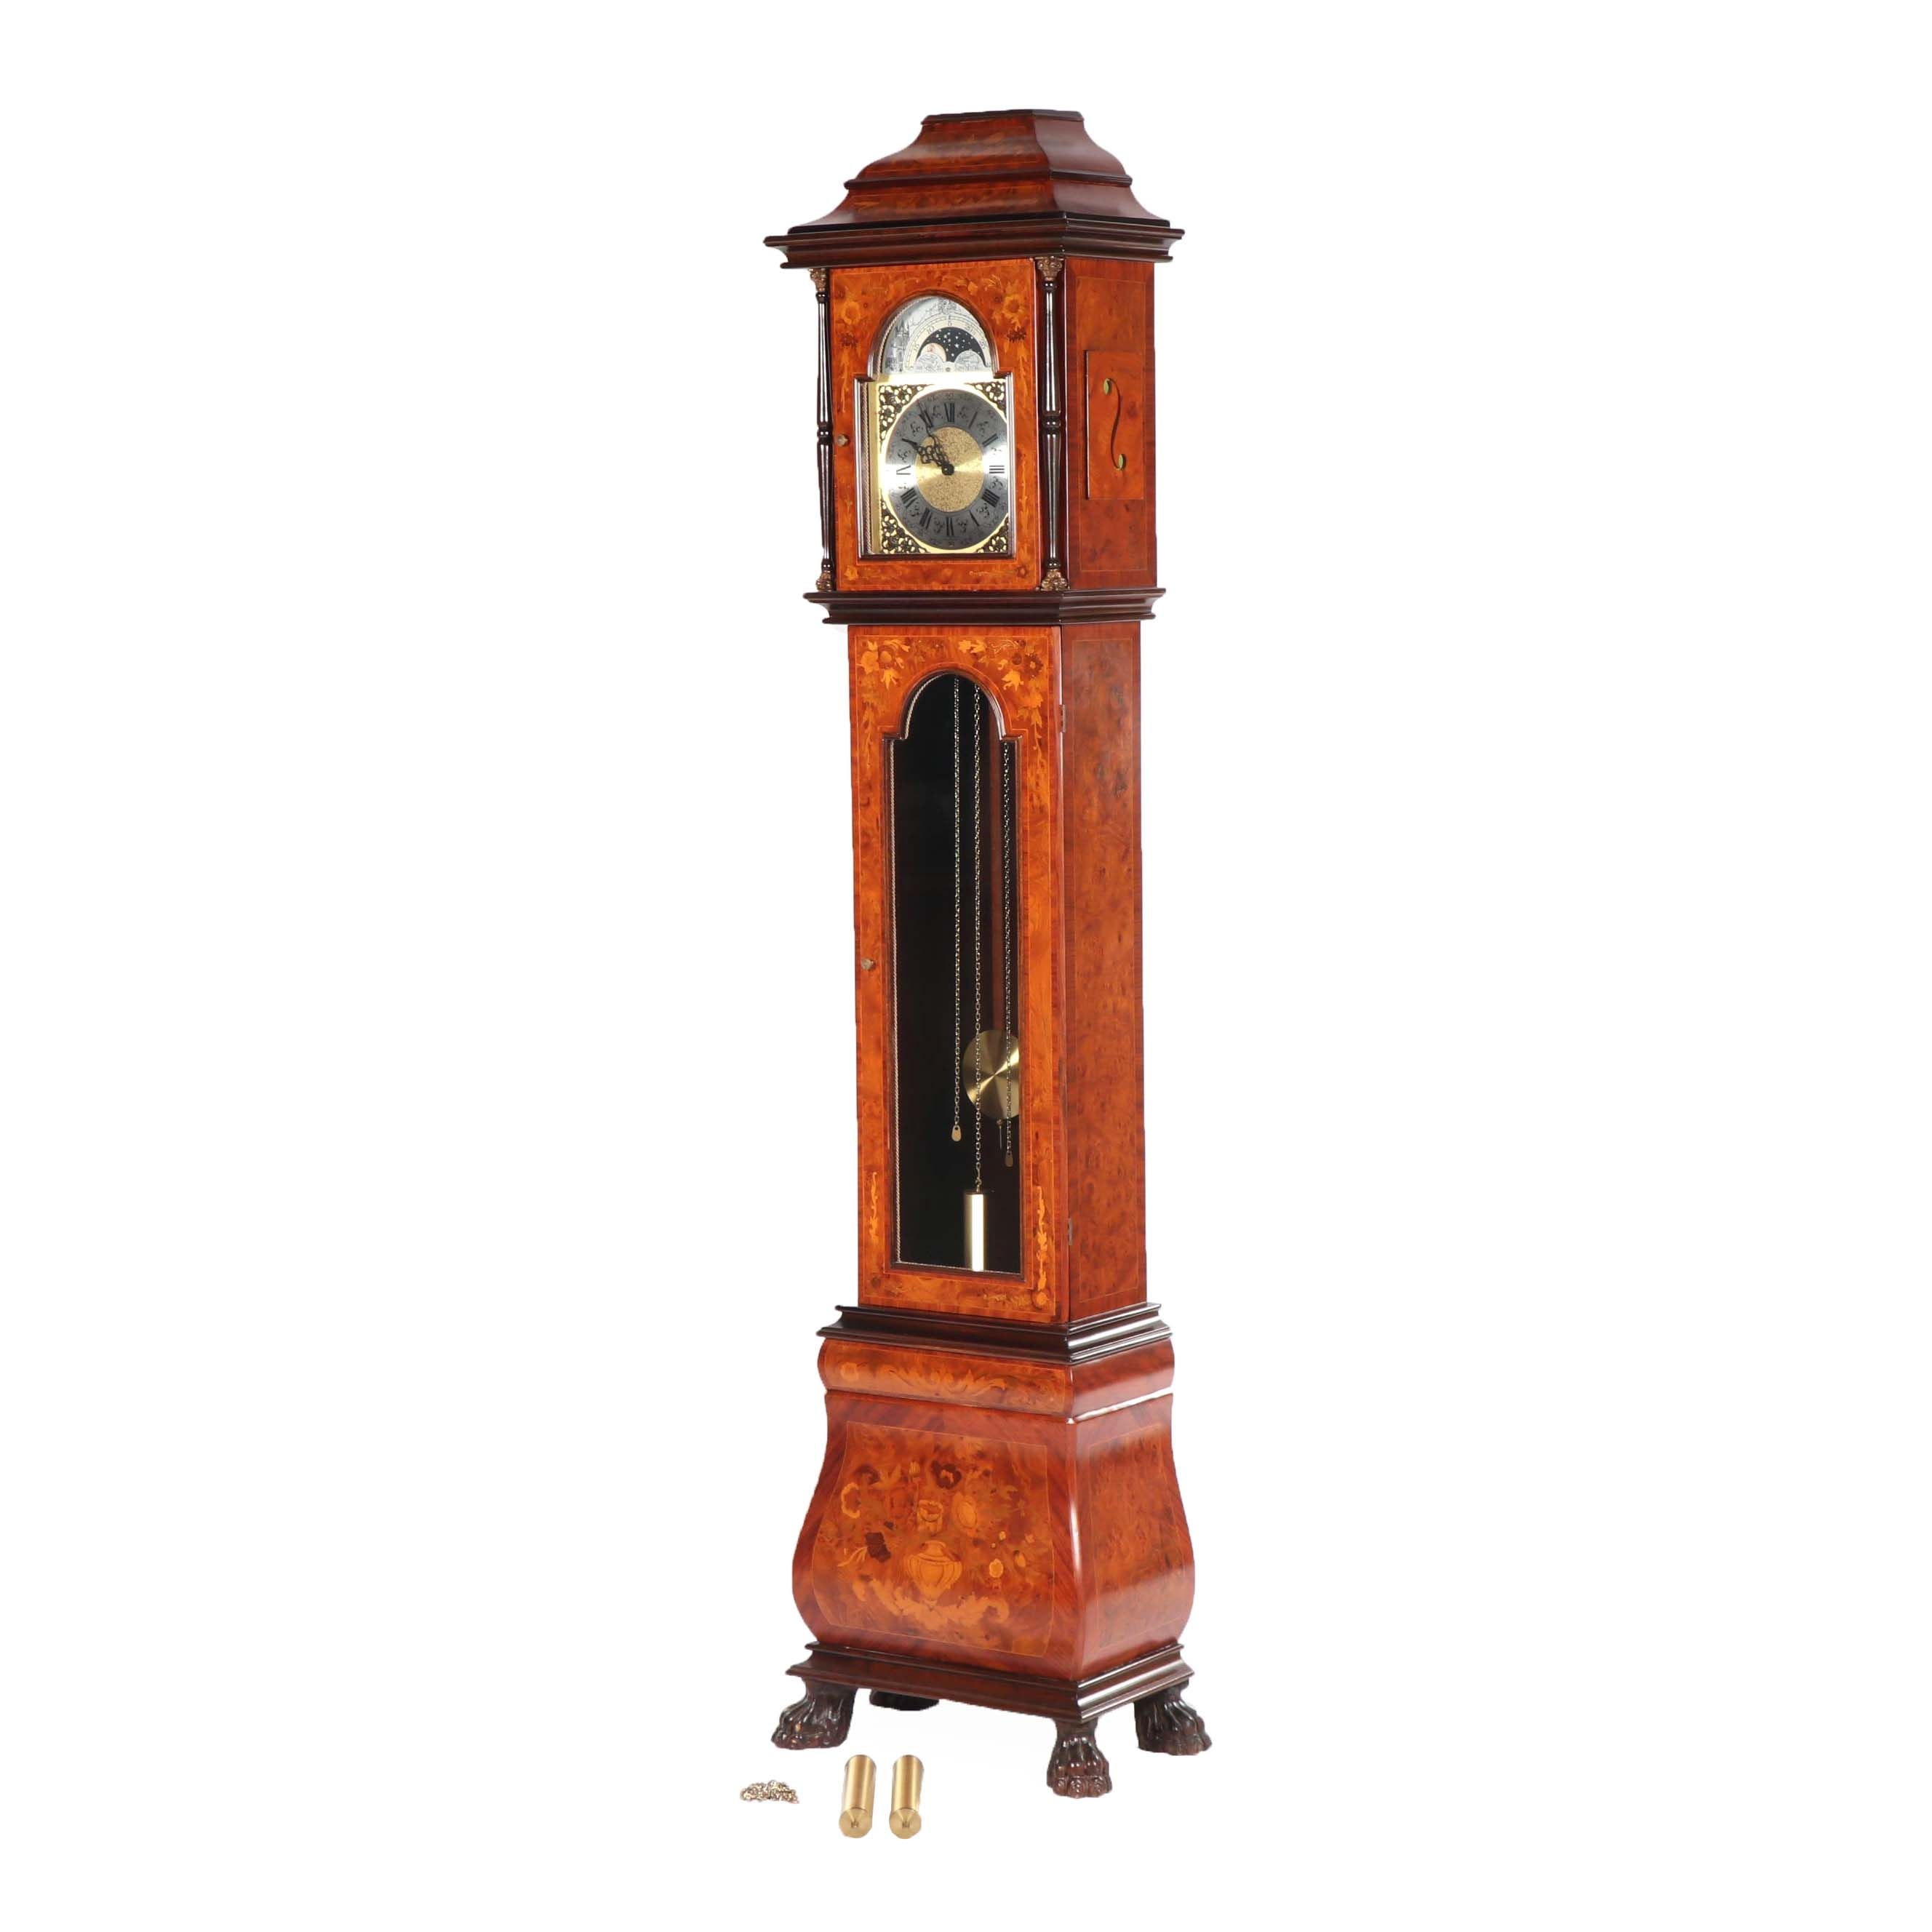 Franz Hermle Burl Wood and Inlaid Veneer Grandfather Clock